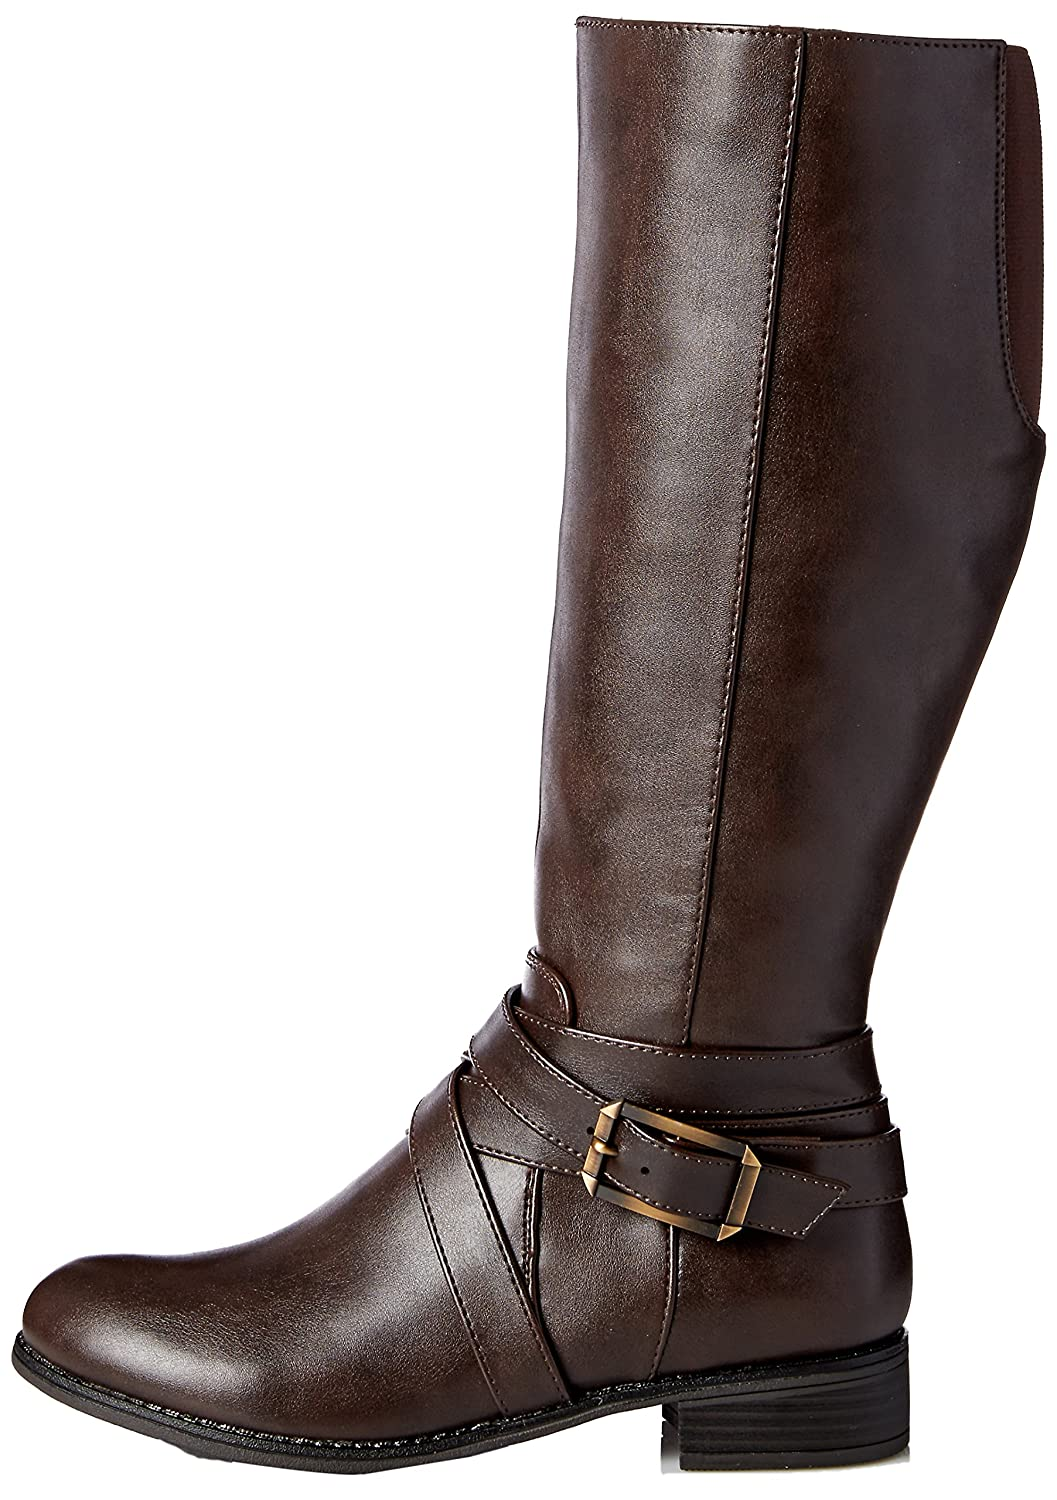 LifeStride Women's Subtlewc Equestrian Boot B075G215P9 10 W US|Dark Brown